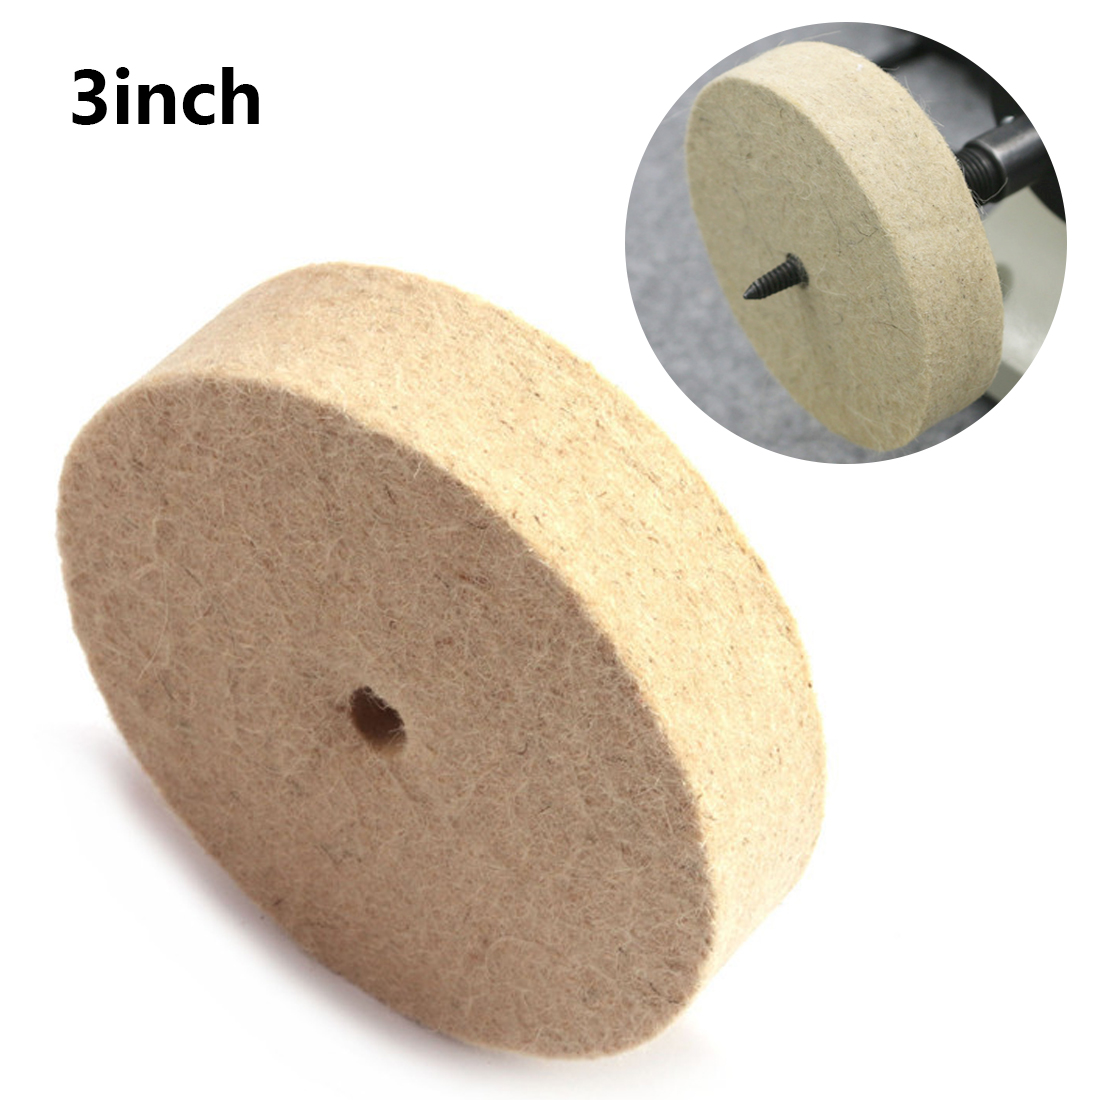 Abrasive Disc 3 Inch 80mm Drill Grinding Wheel Buffing Wheel Felt Wool Polishing Pad For Bench Grinder Rotary Tool